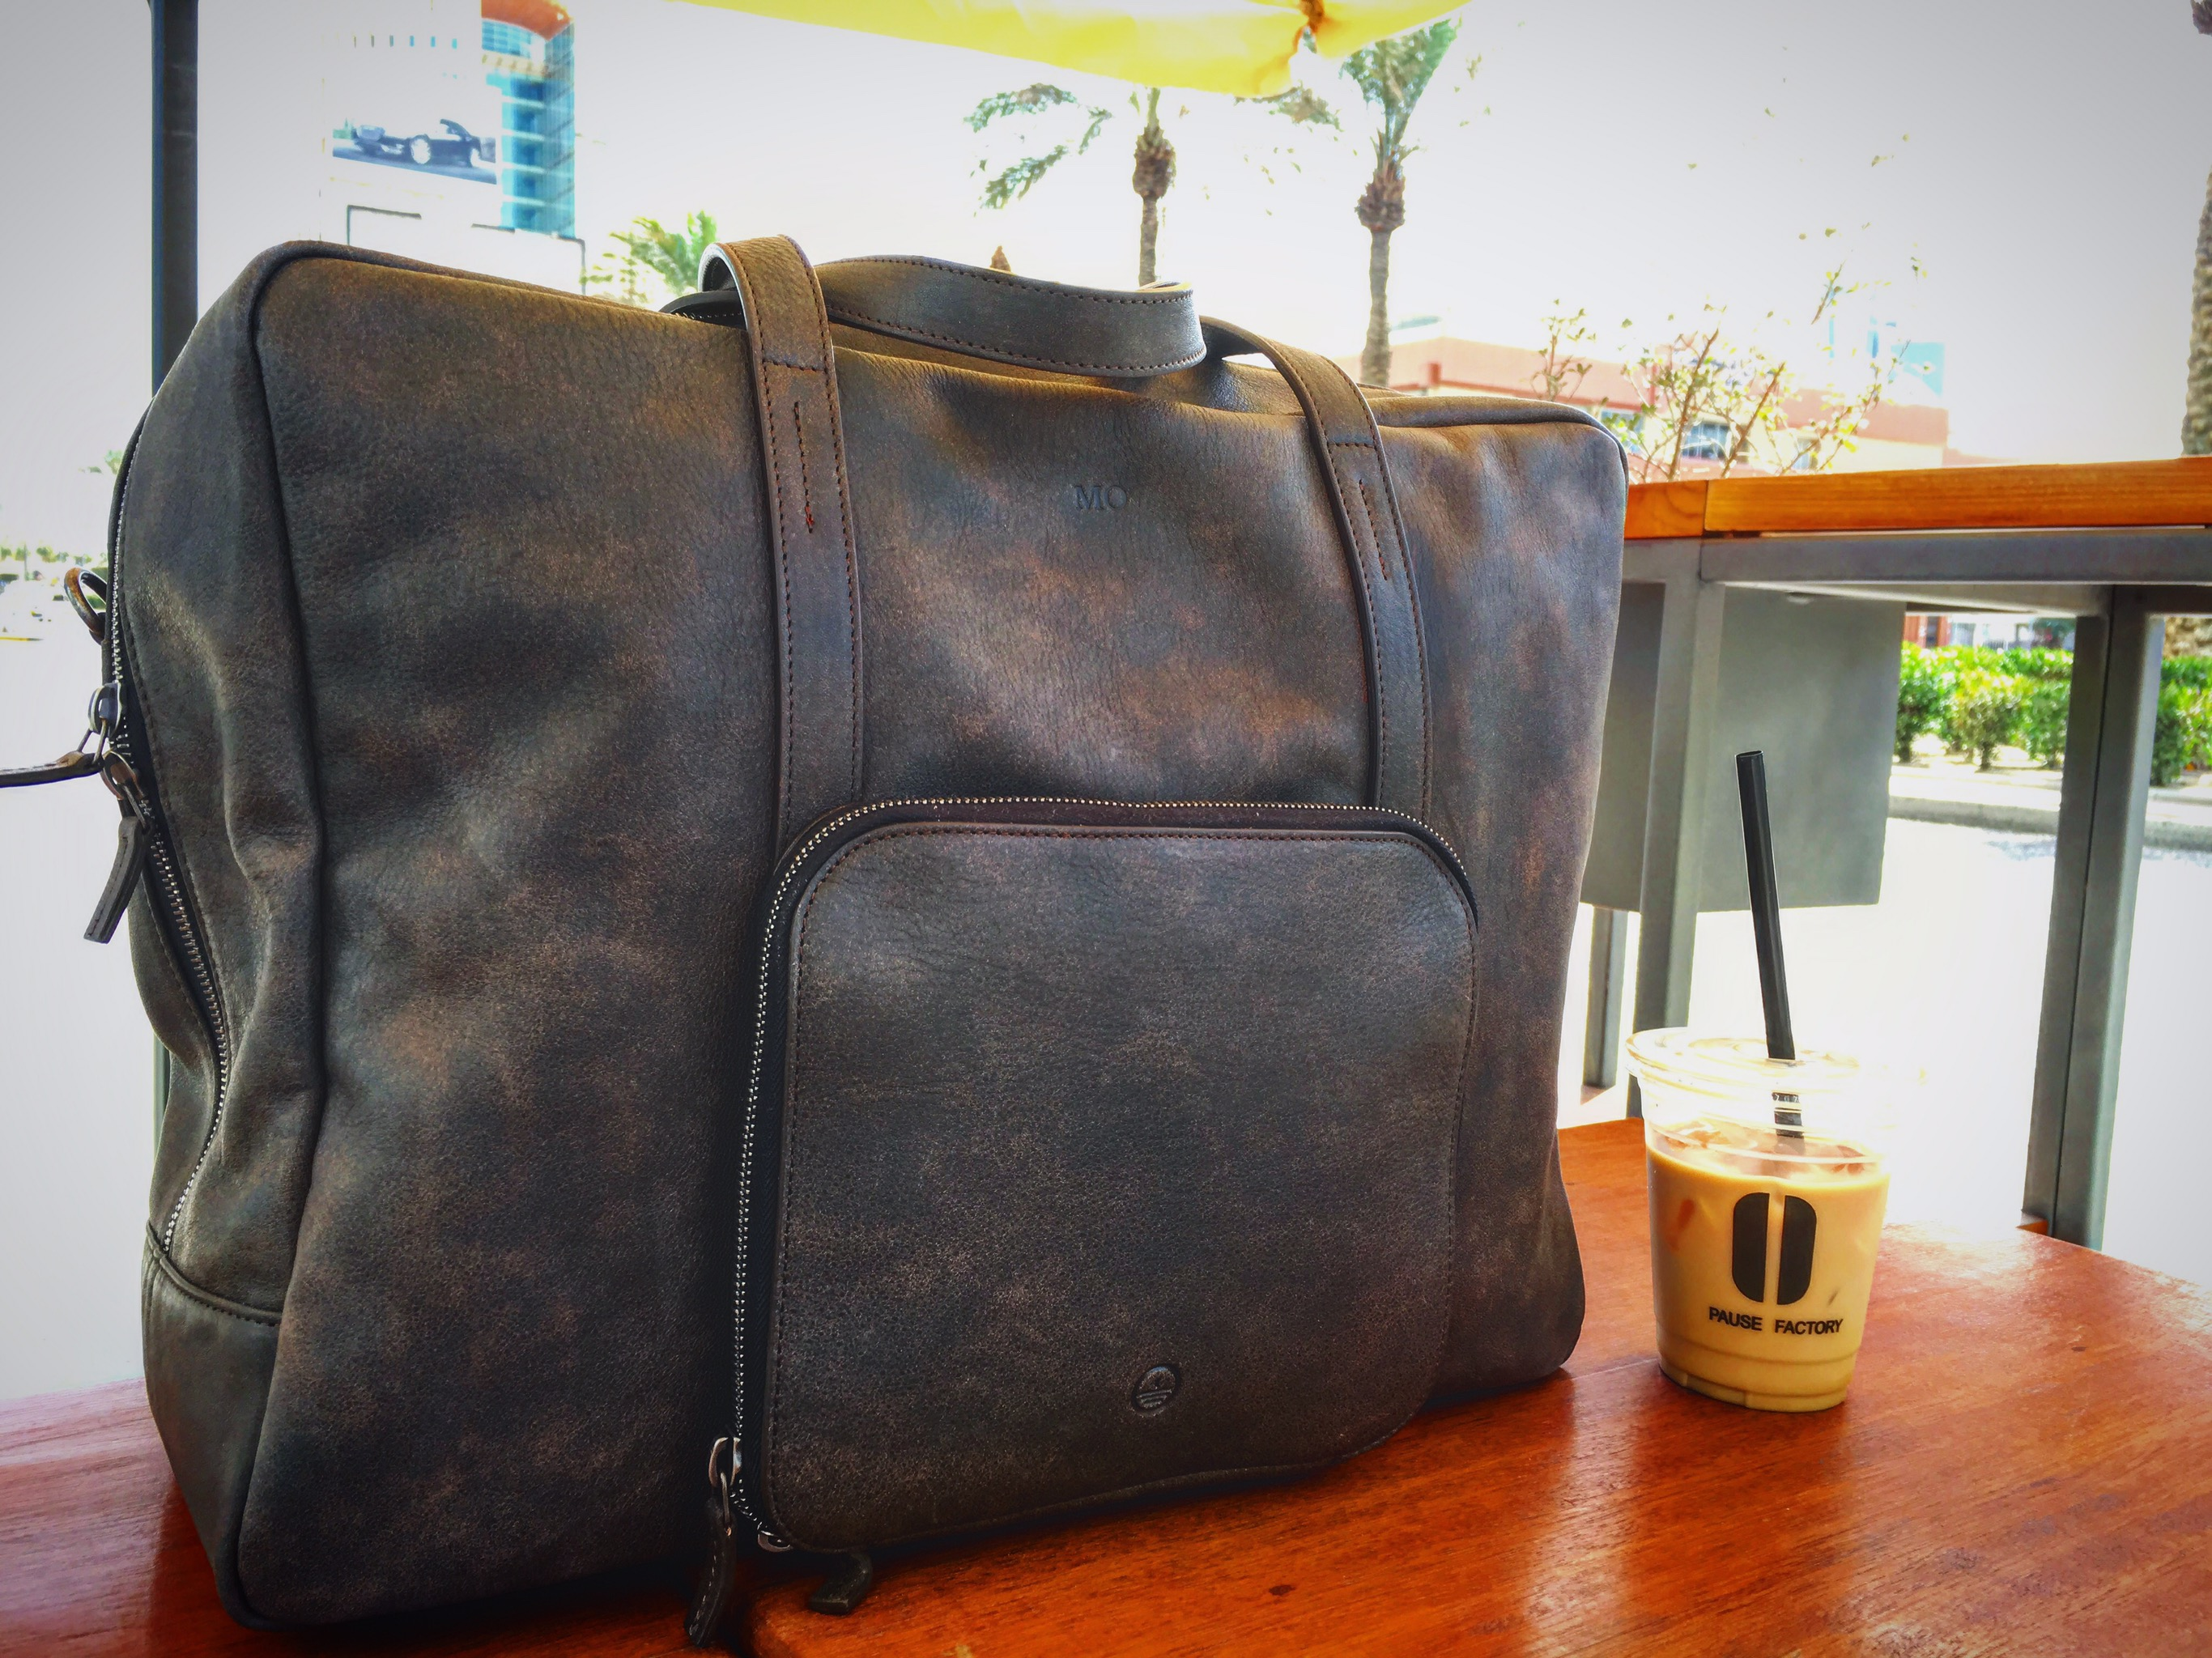 9a171a952712 The Voyager weekender sized bag that ll not only store the stuff you need —  but also help you get them easily without the hassle we all suffer from  when we ...